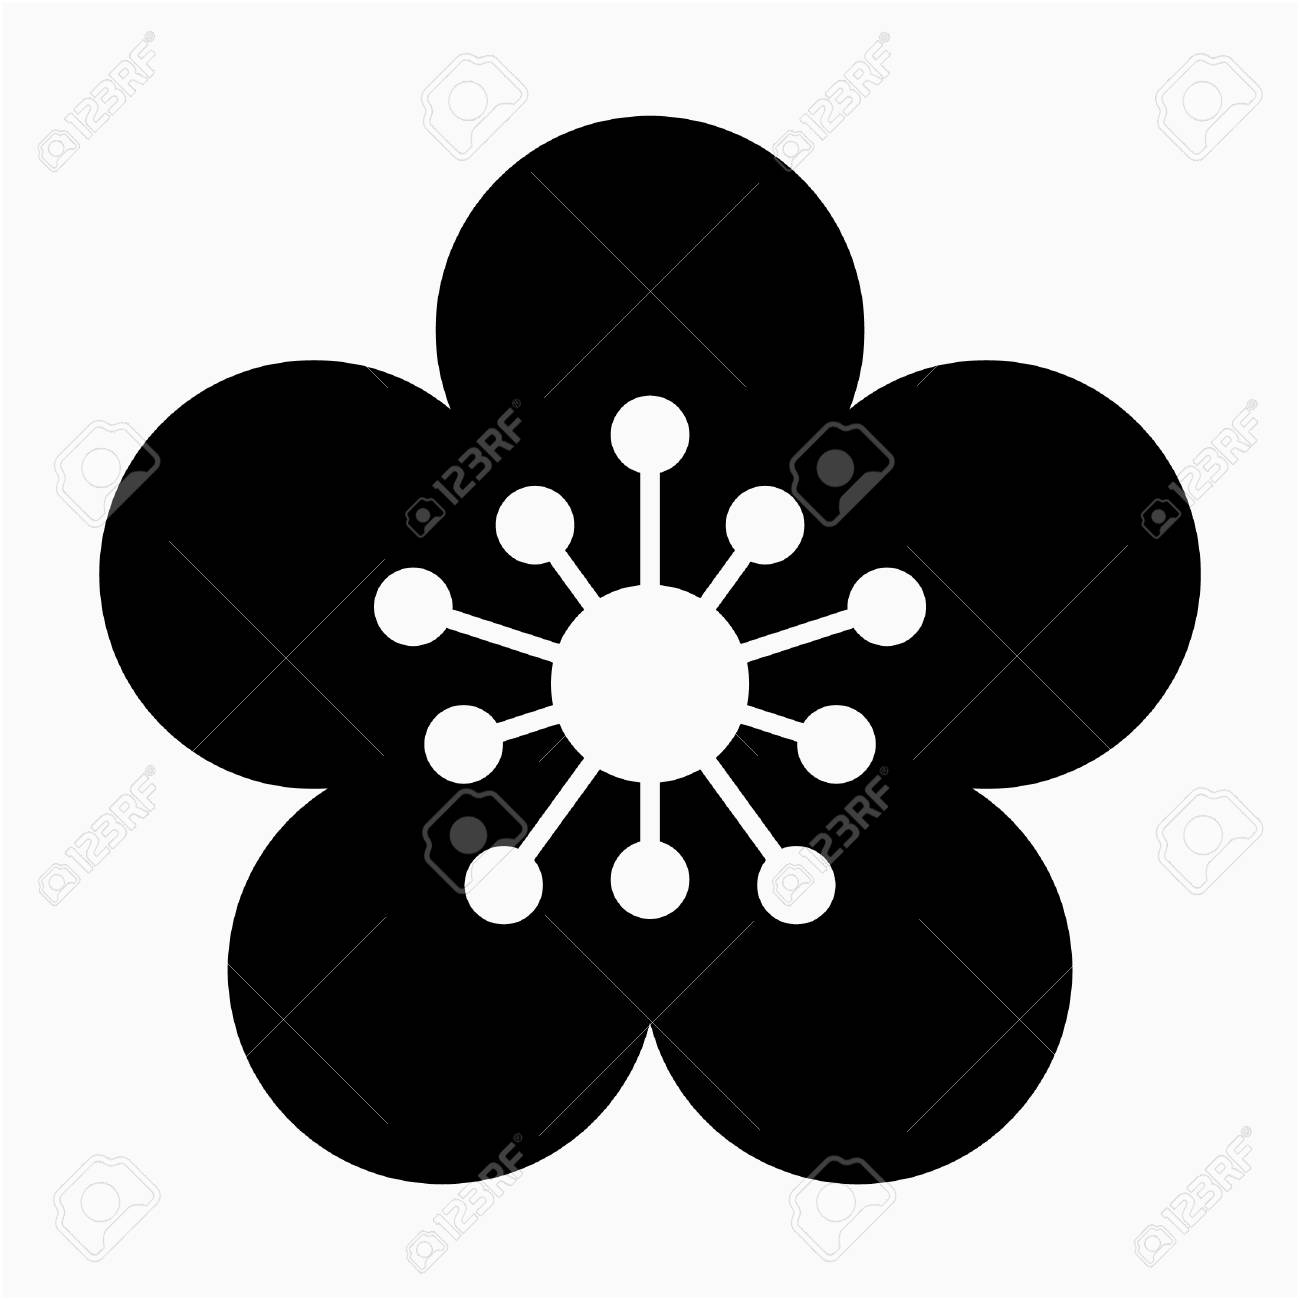 glyph Apricot Blossom flower pixel perfect vector icon - 111941127